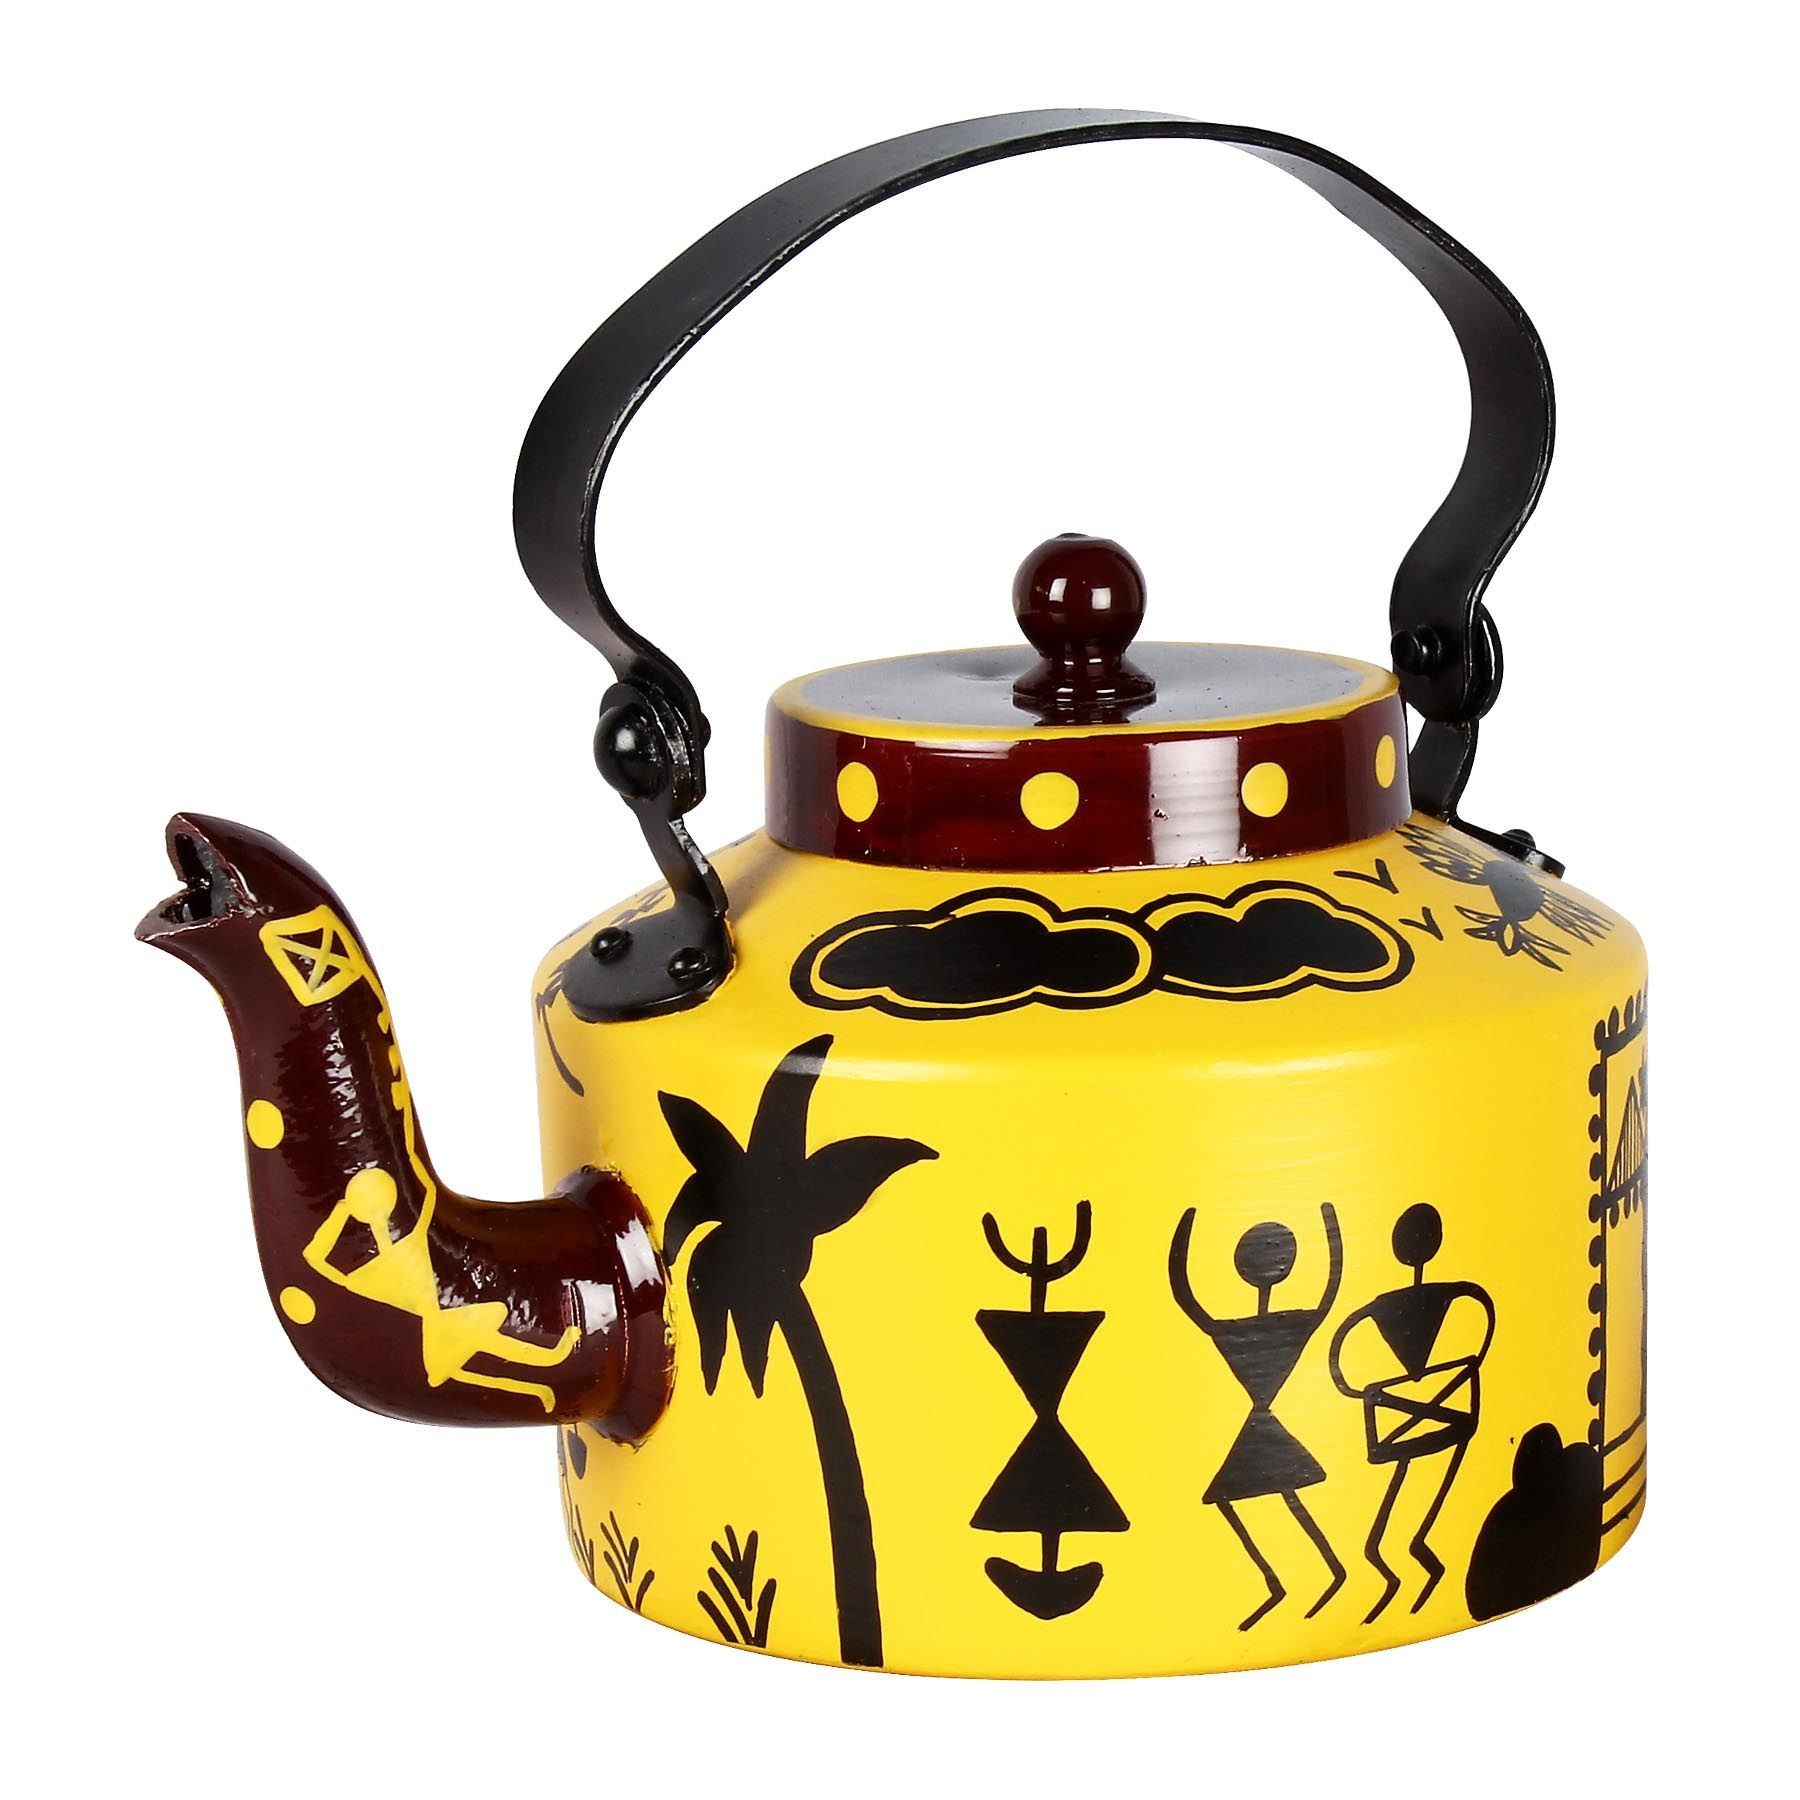 Offbeat and hand painted this kettle is adorned using Warli art ...